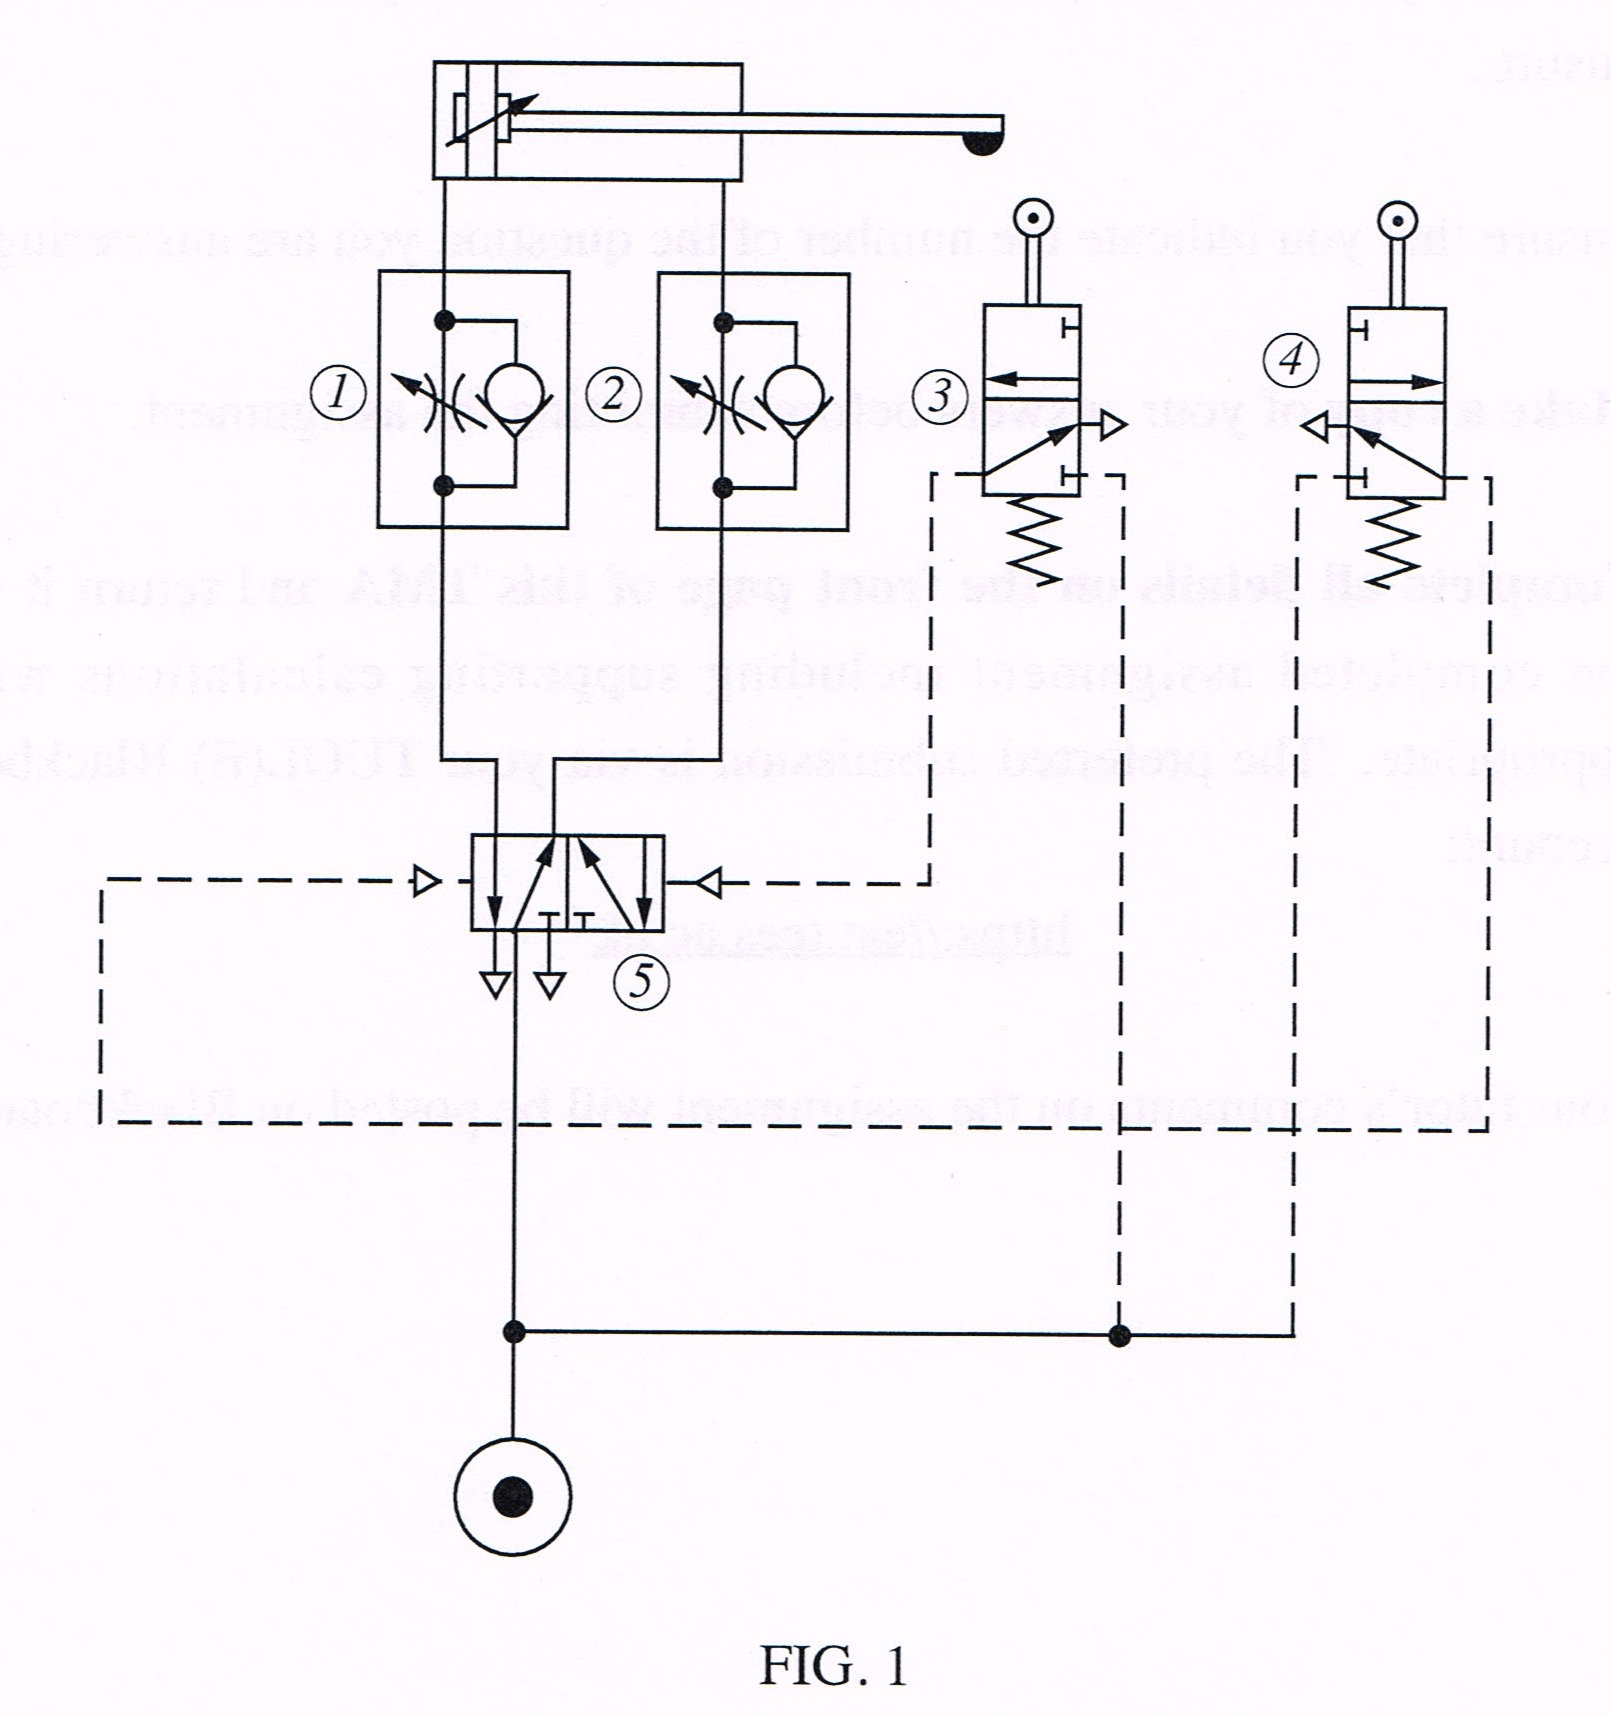 hight resolution of solved fig 1 shows a pneumatic circuit diagram used for a c classify the